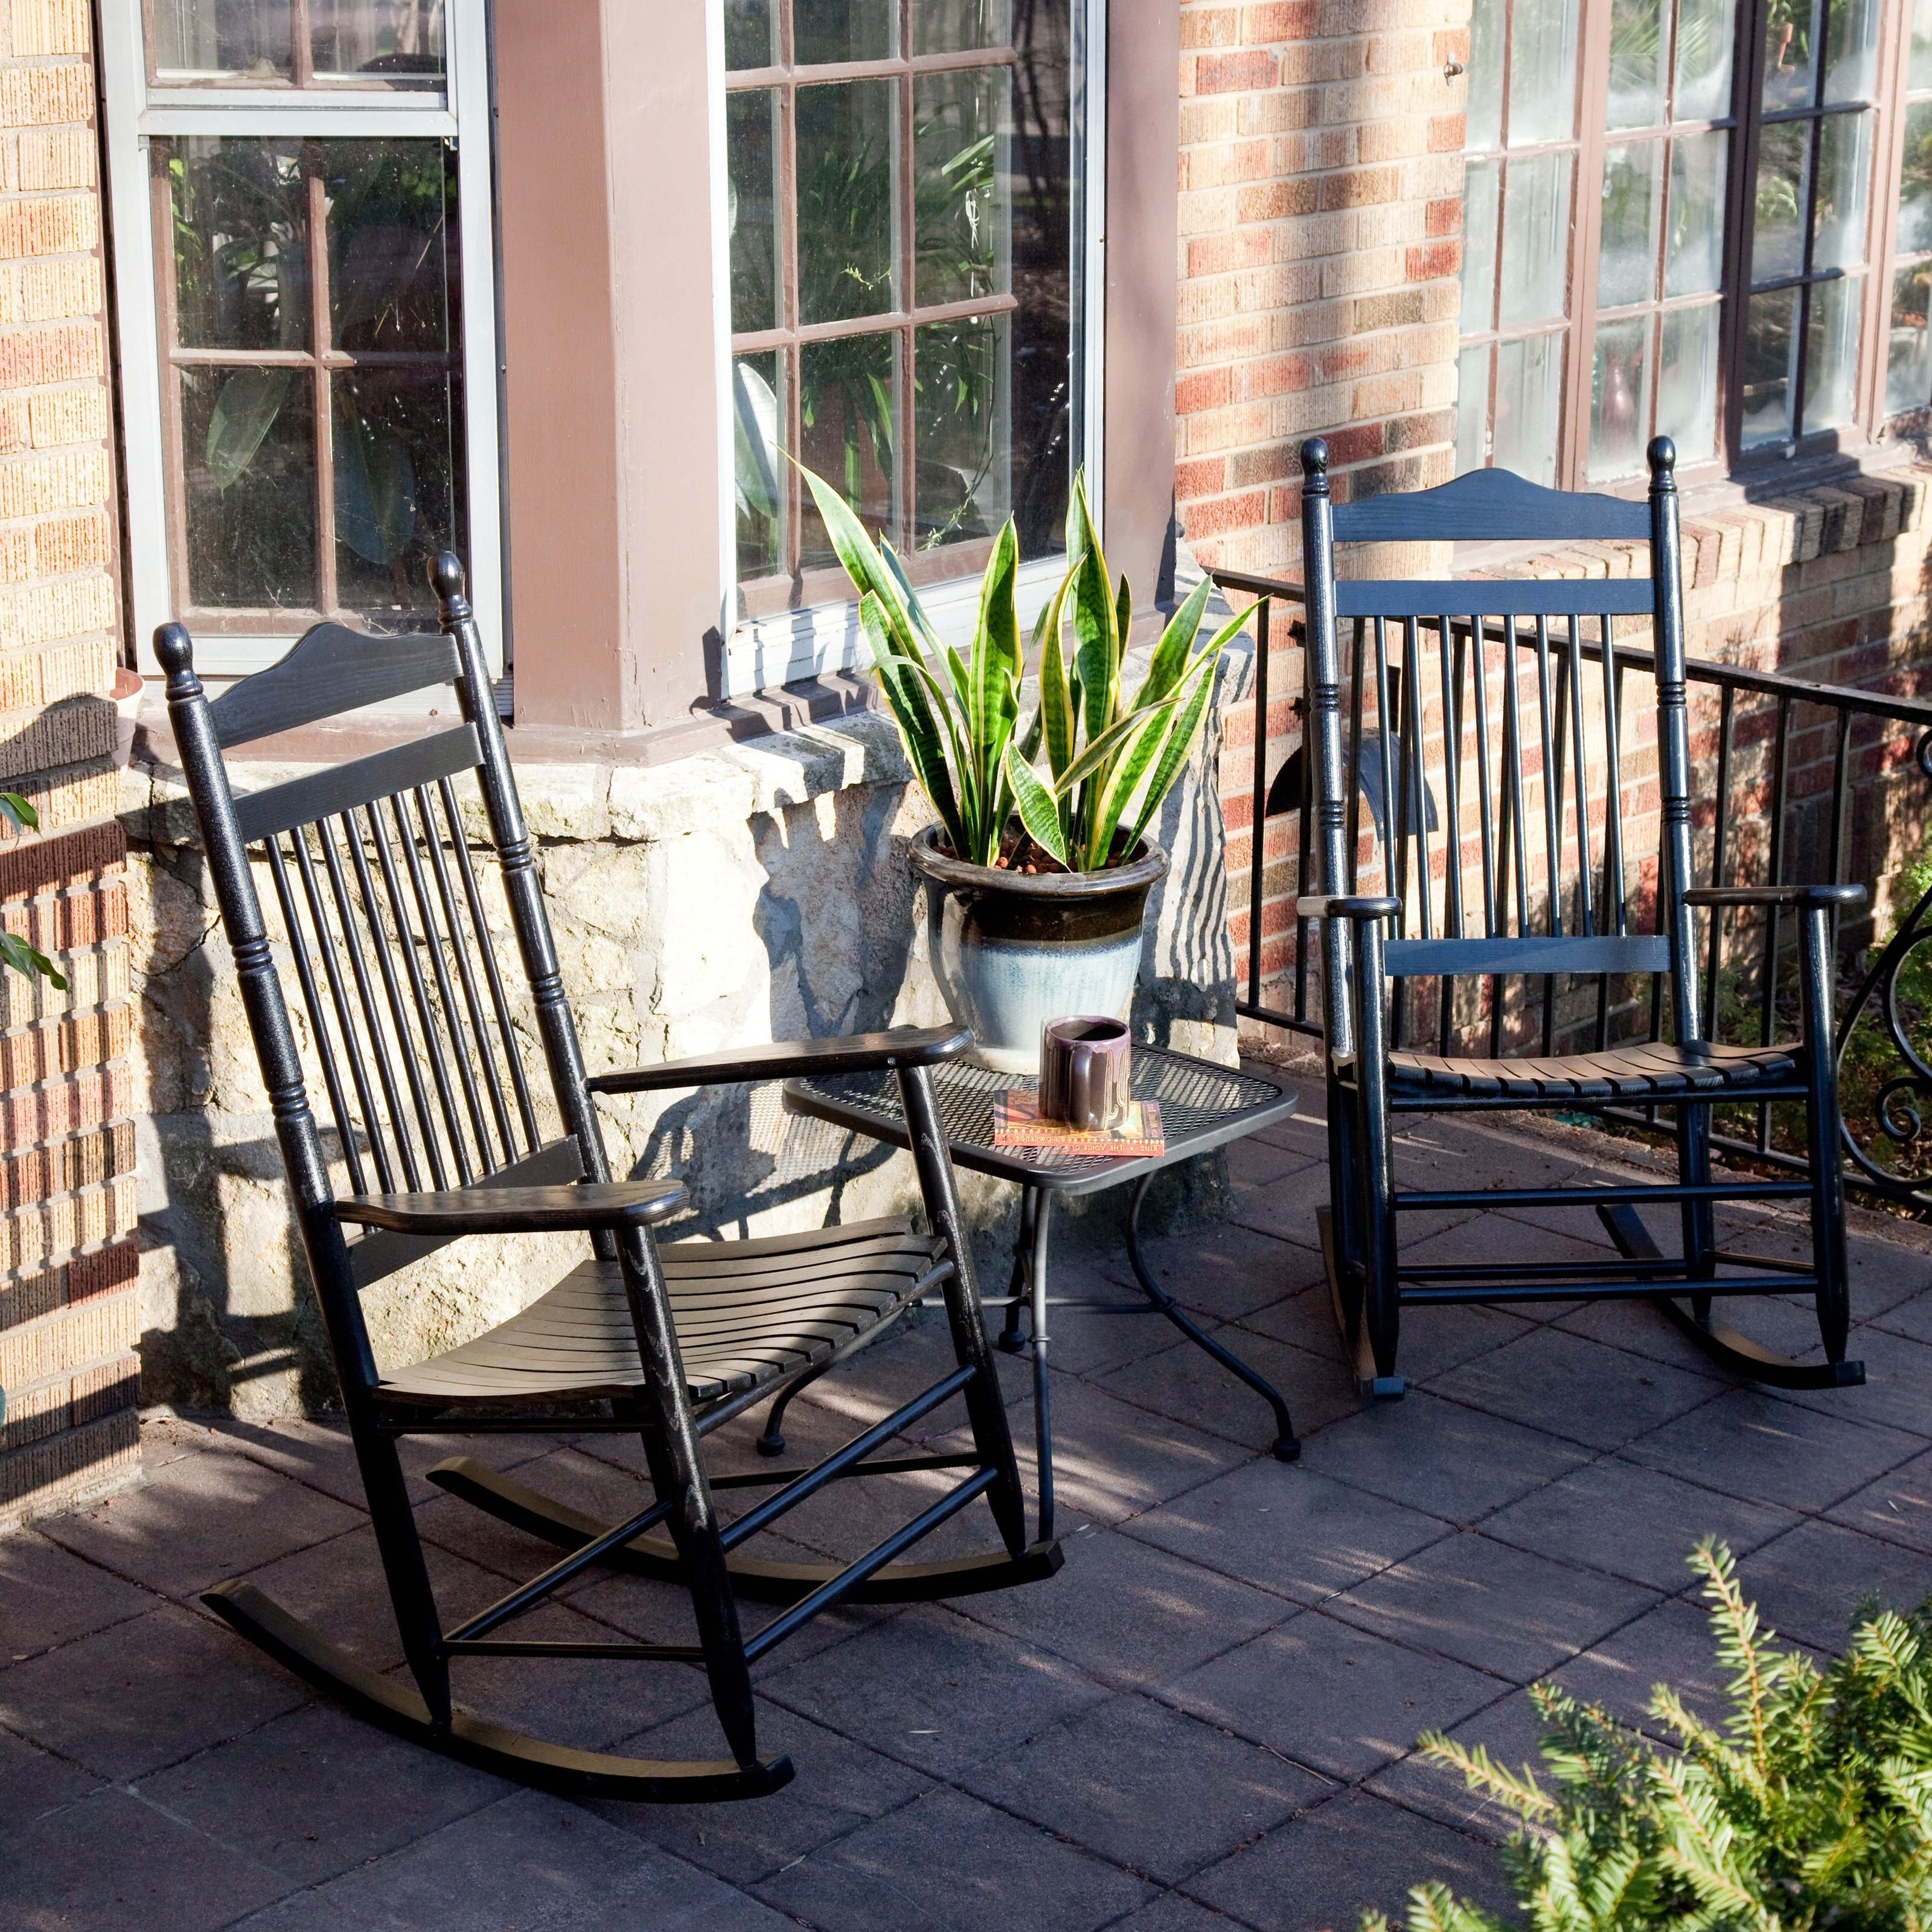 Dixie Seating Wrightsville Indoor Outdoor Slat Rocking Chairs Wicker Within 2018 Patio Rocking Chairs And Table (View 9 of 15)